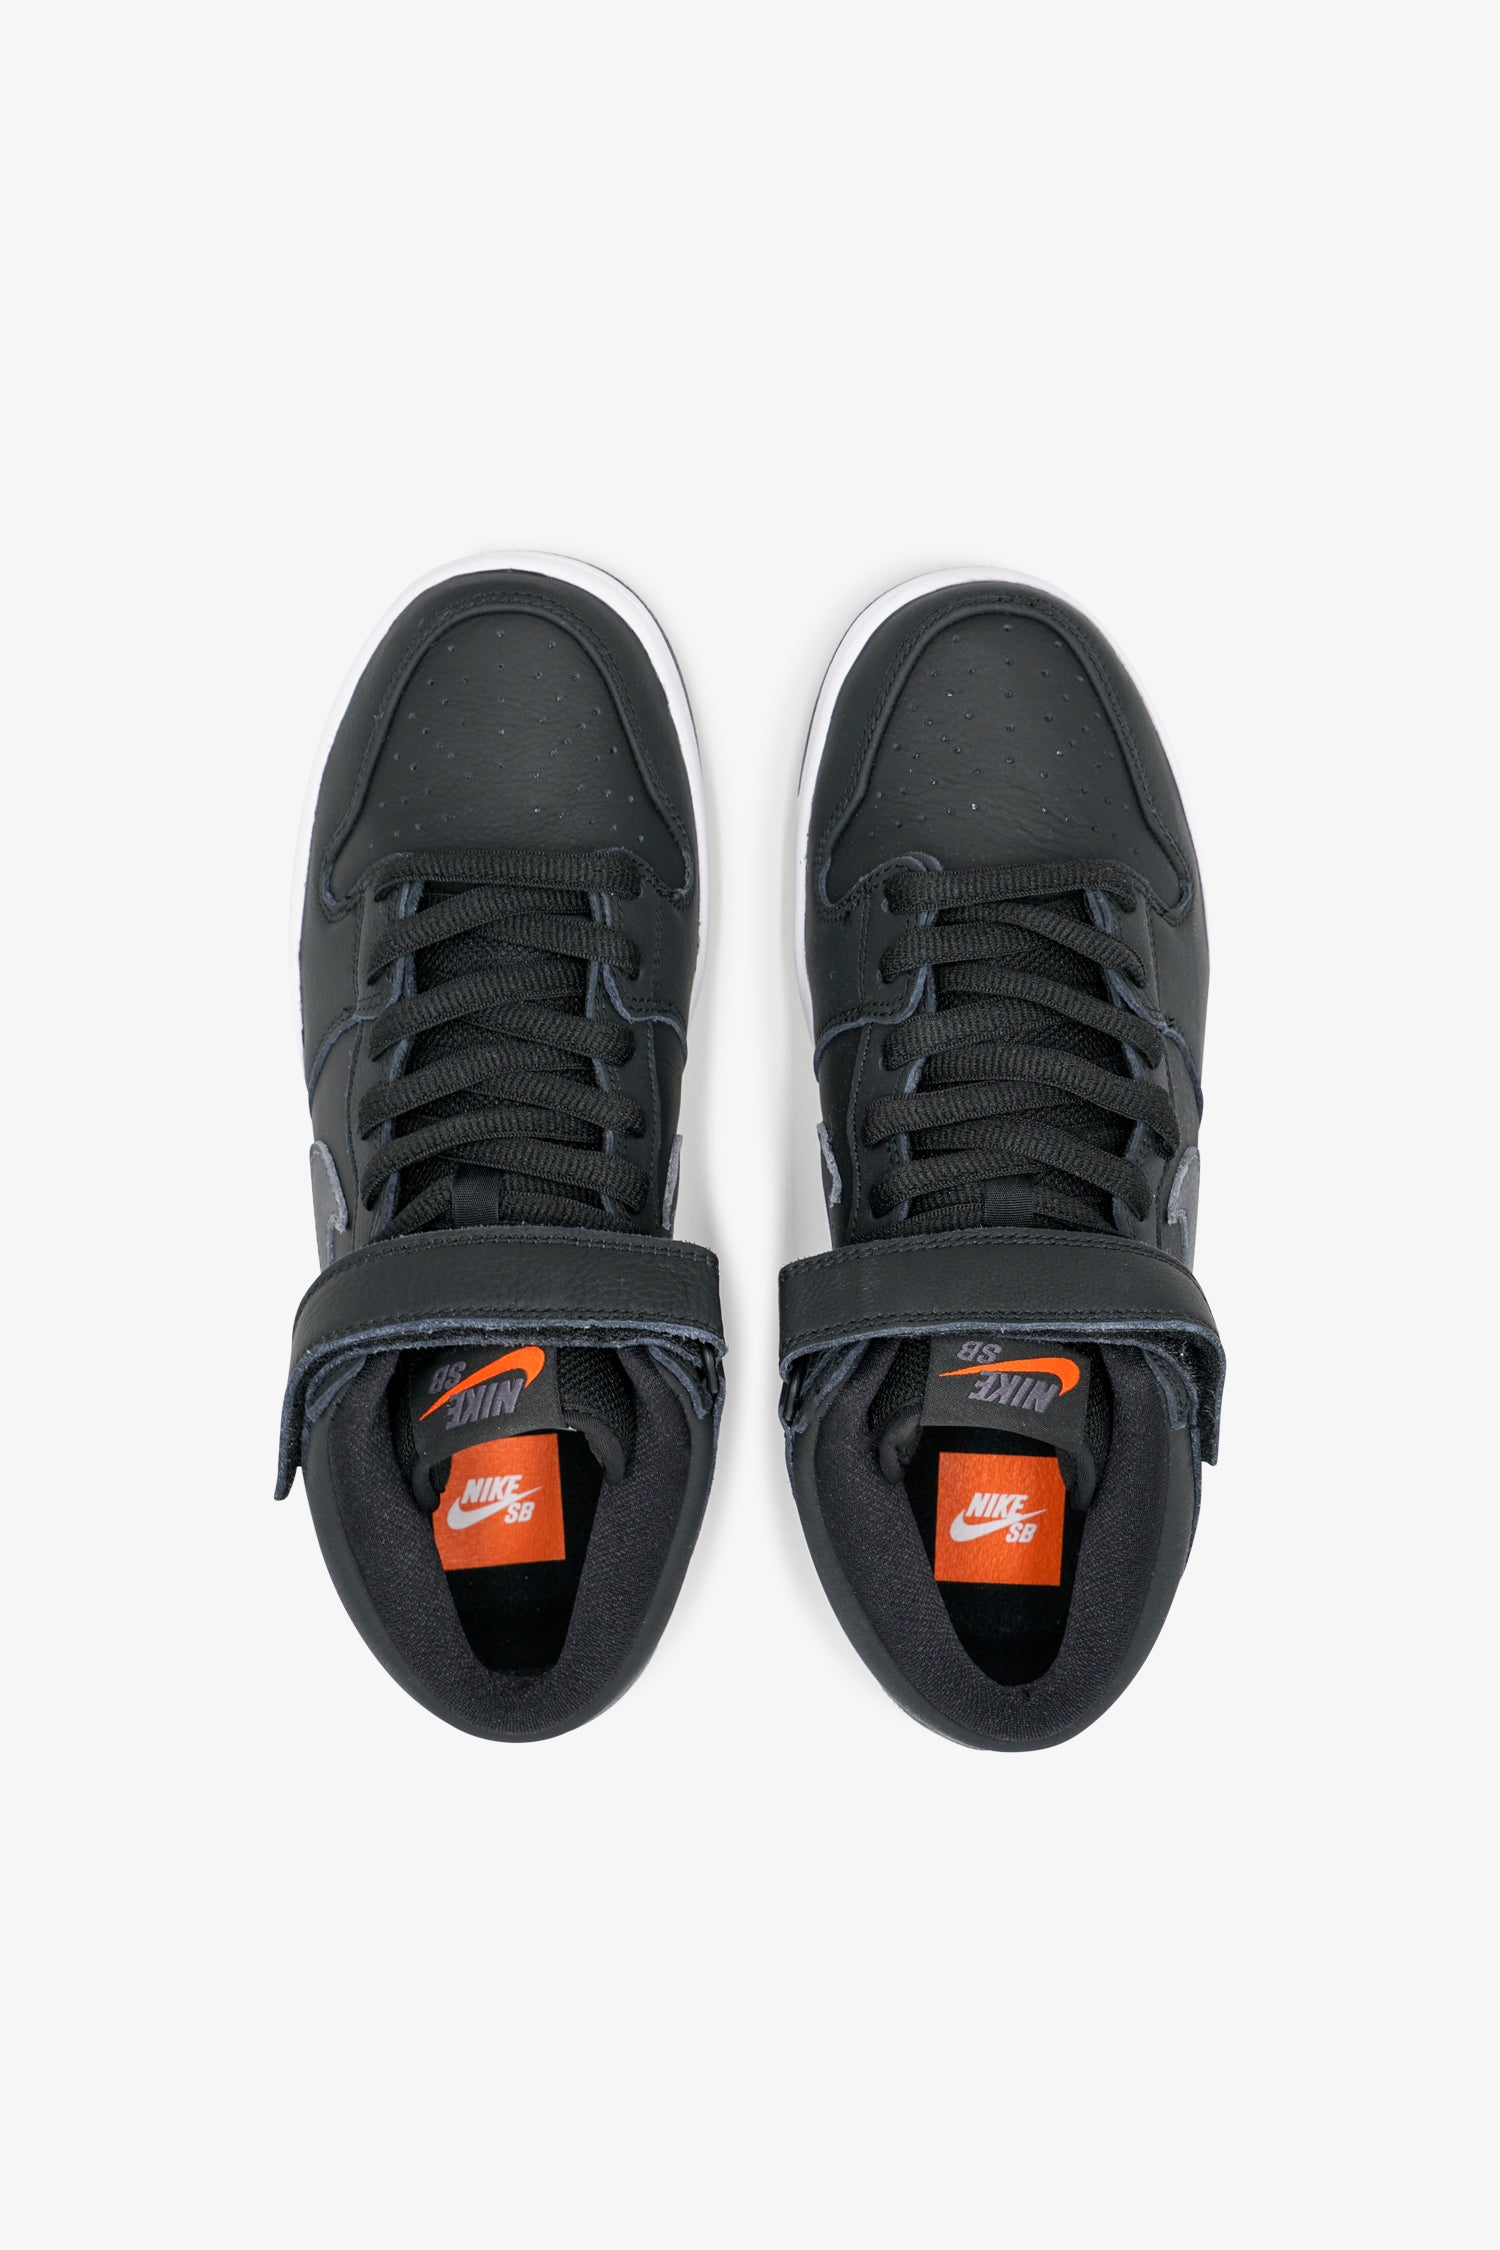 "Selectshop FRAME - NIKE SB Dunk Mid Pro ""Orange Label"" Footwear Dubai"